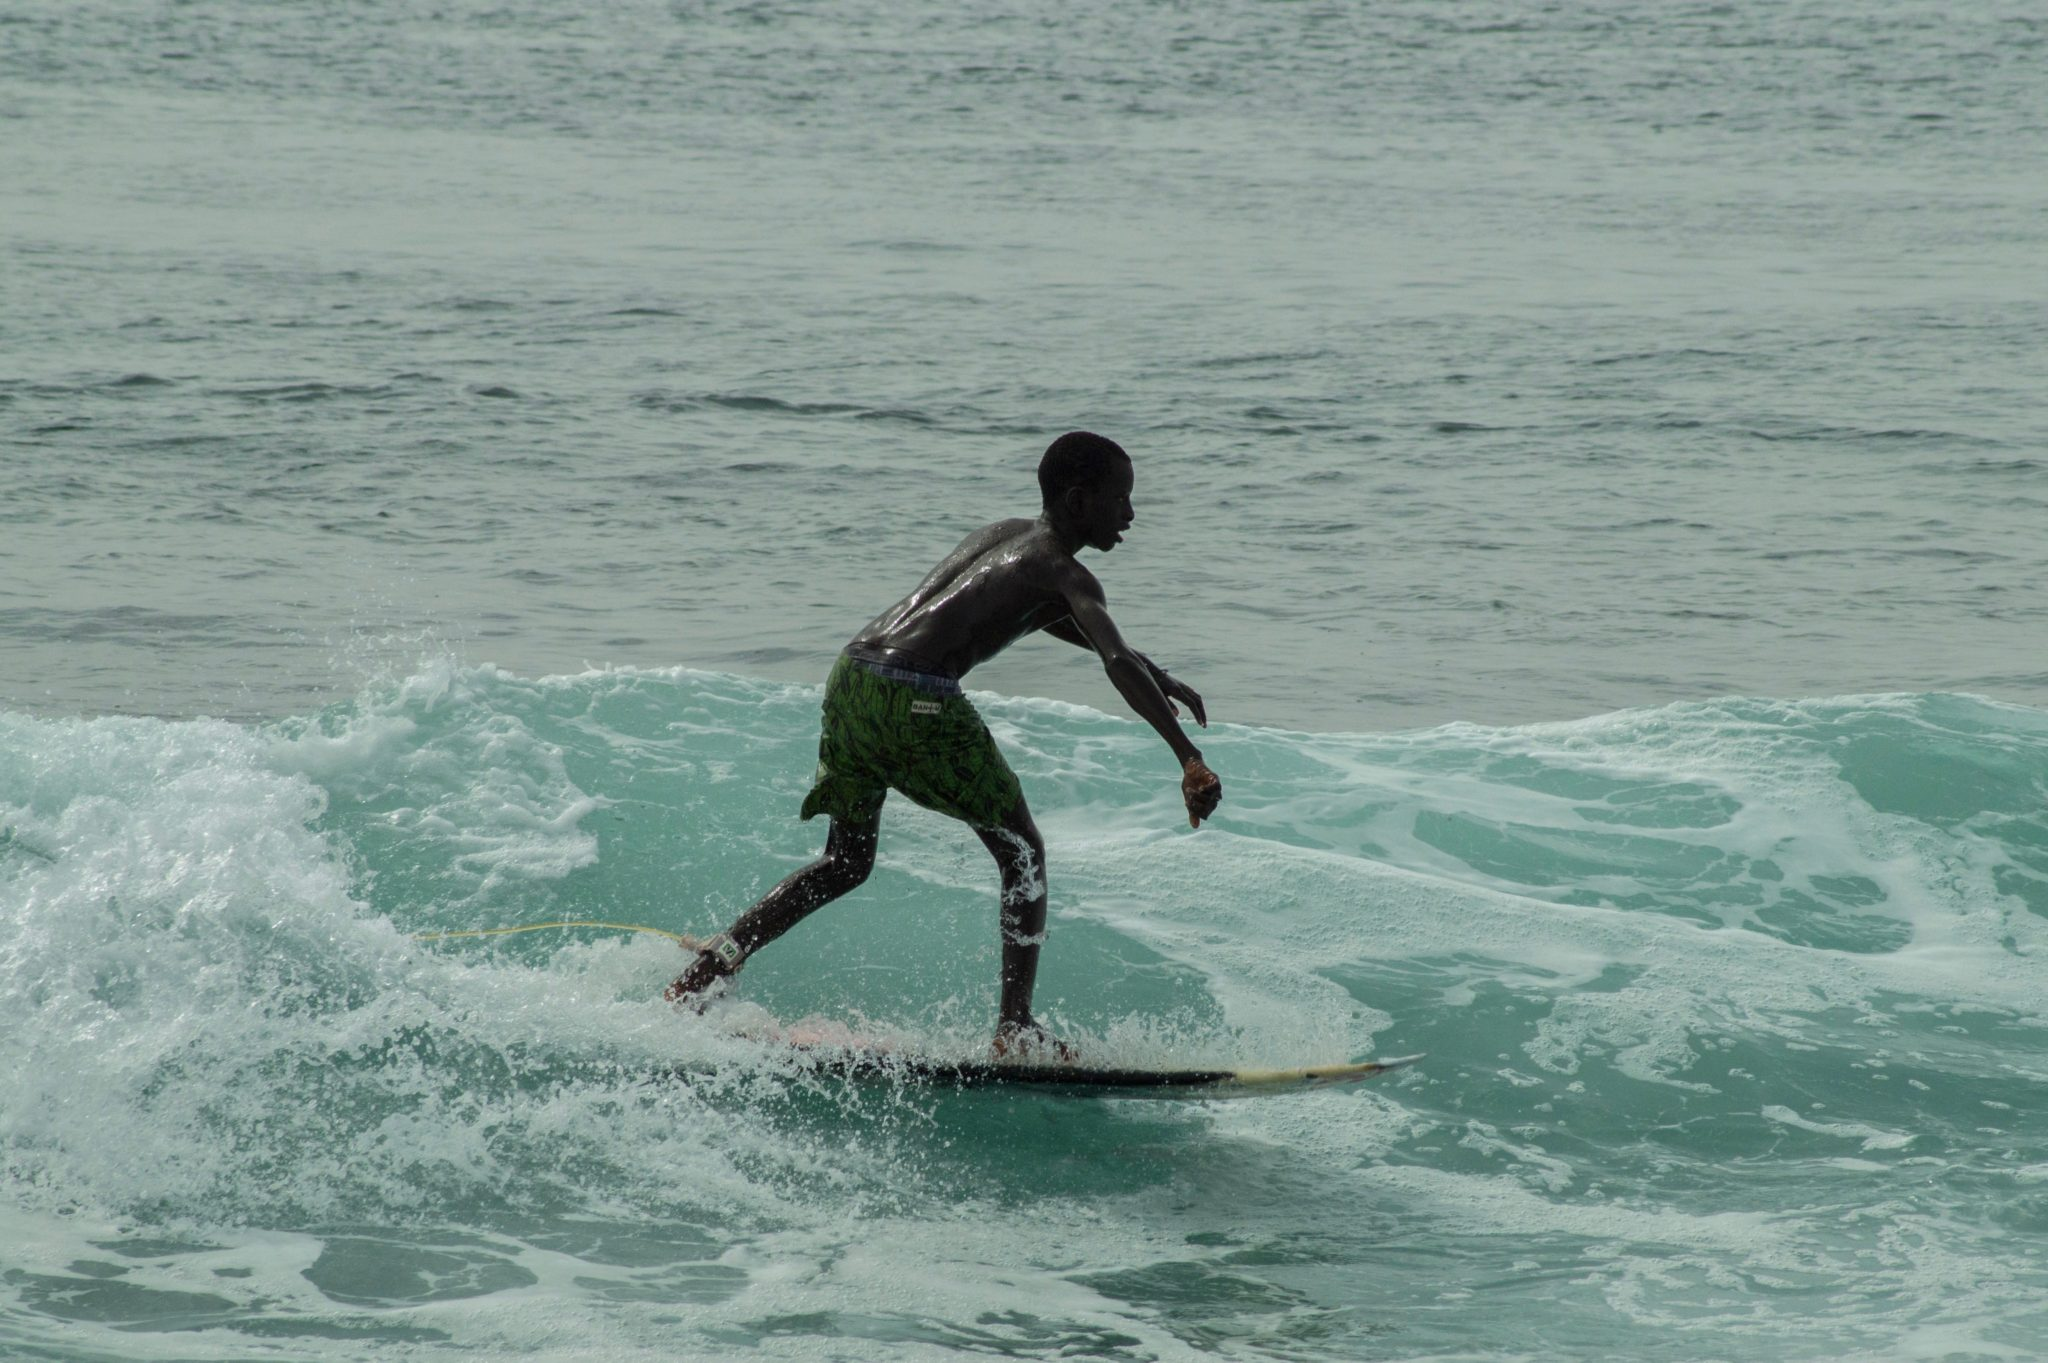 Senegal Surf: An empty line-up means more waves for everyone